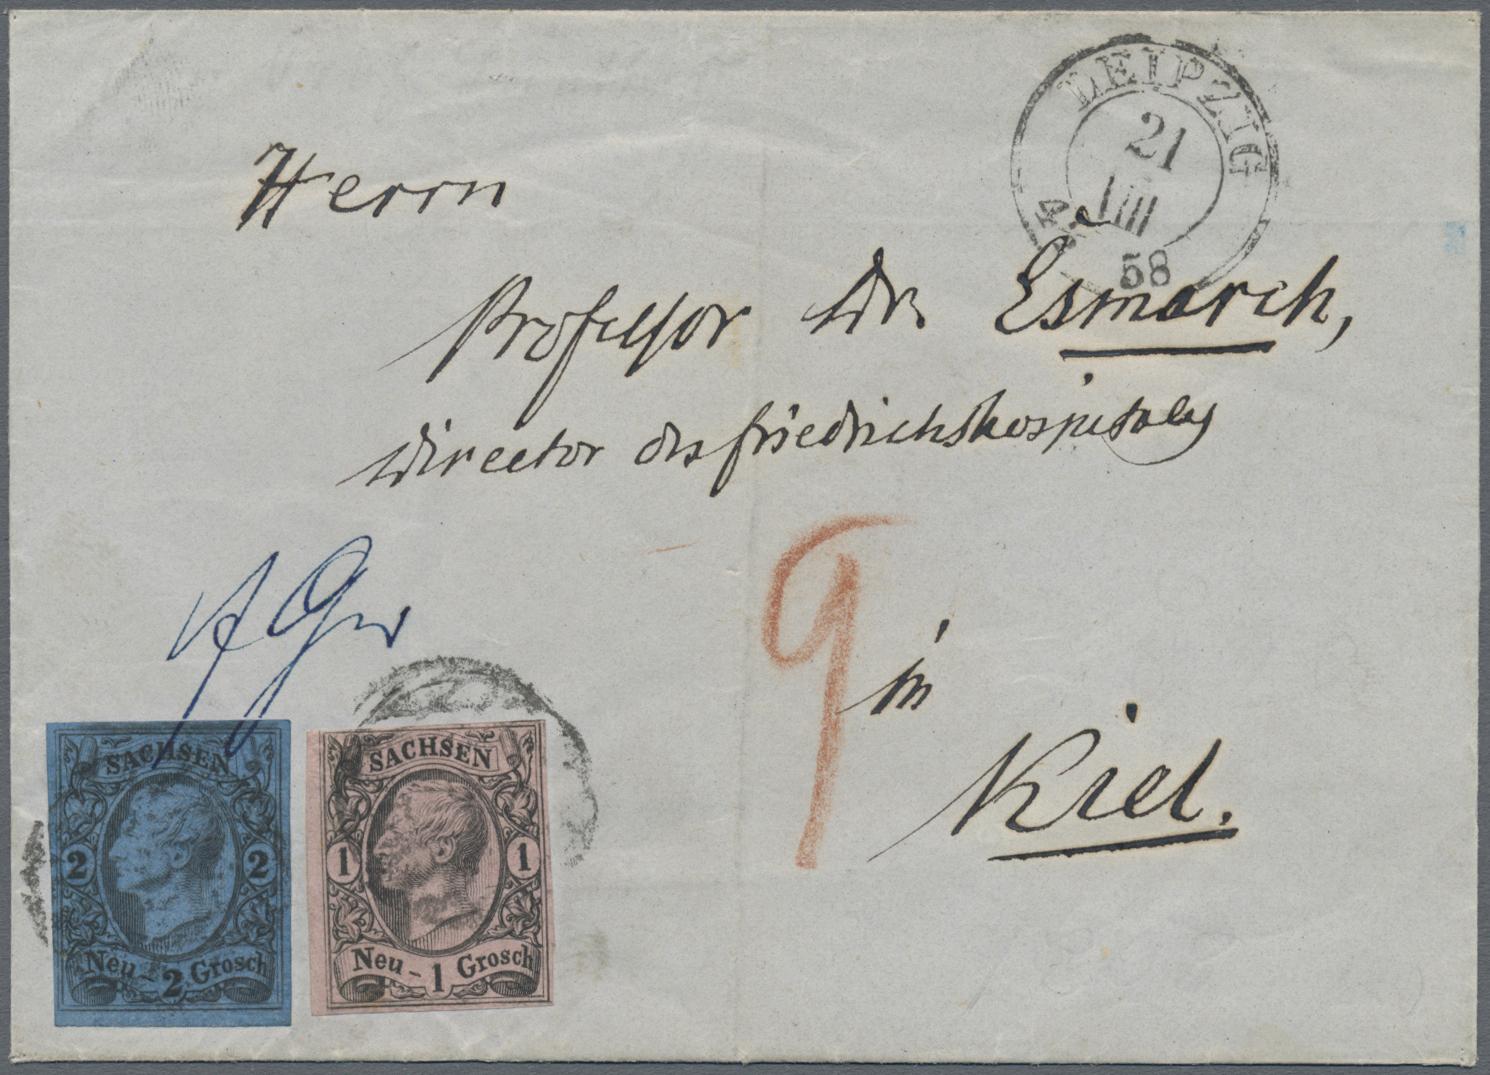 Lot 1240 - Sachsen - Marken und Briefe  -  Auktionshaus Christoph Gärtner GmbH & Co. KG Auction #41 Special auction part two